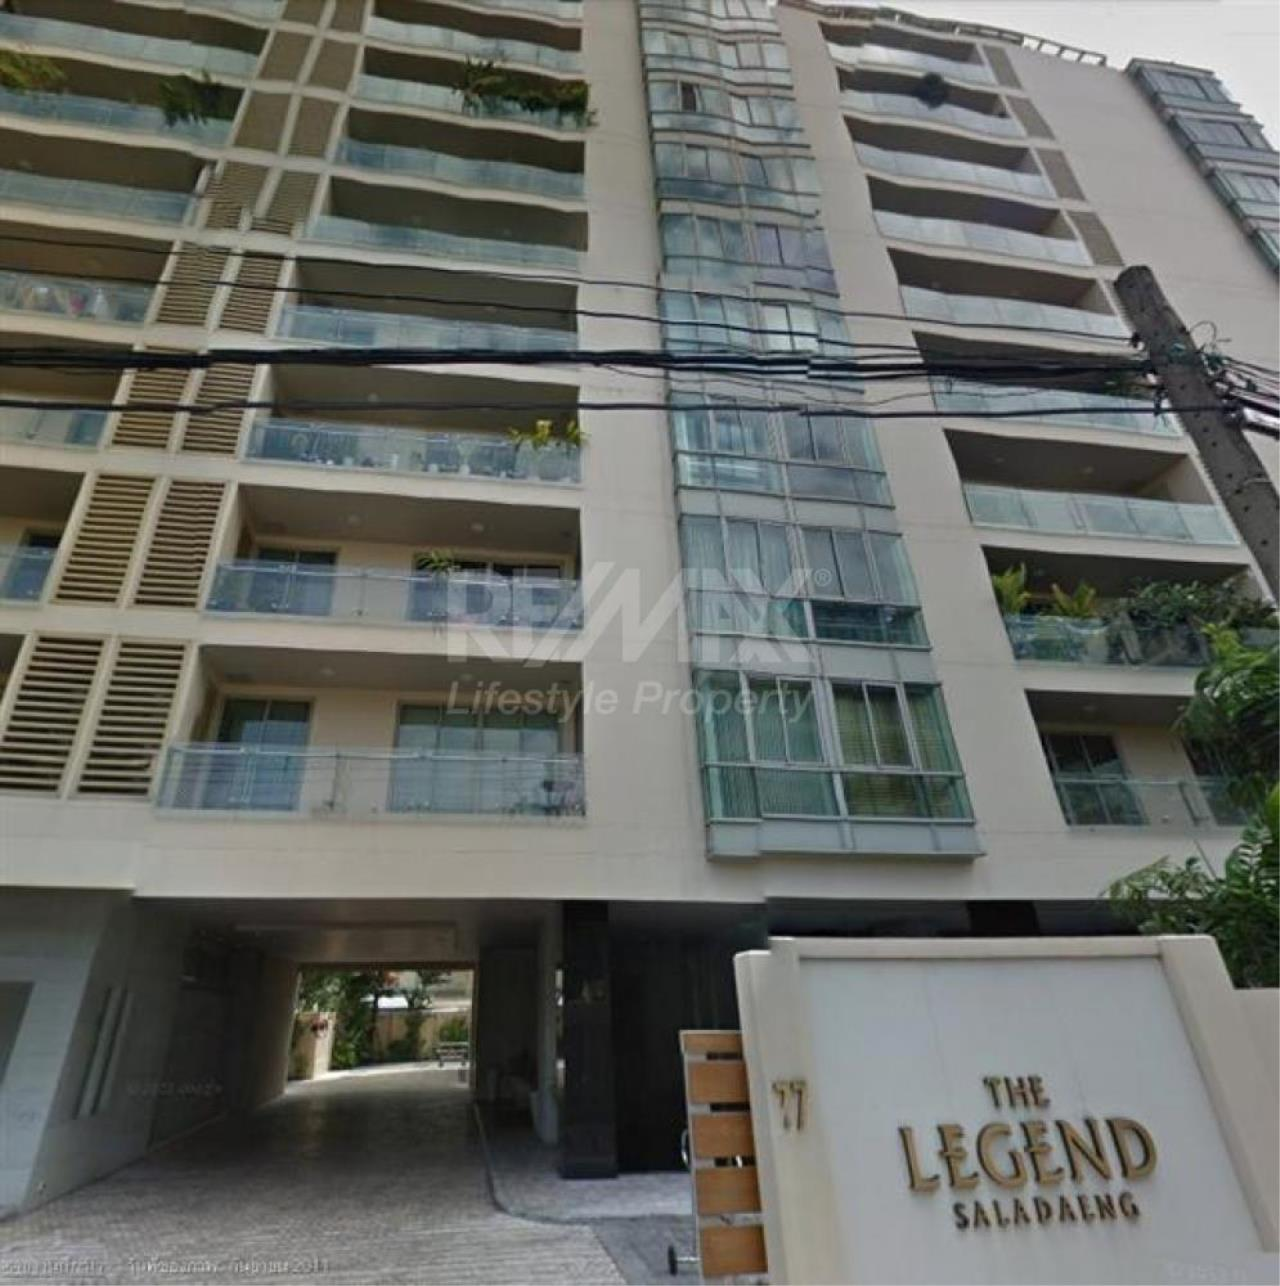 RE/MAX LifeStyle Property Agency's The Legend Saladaeng 4